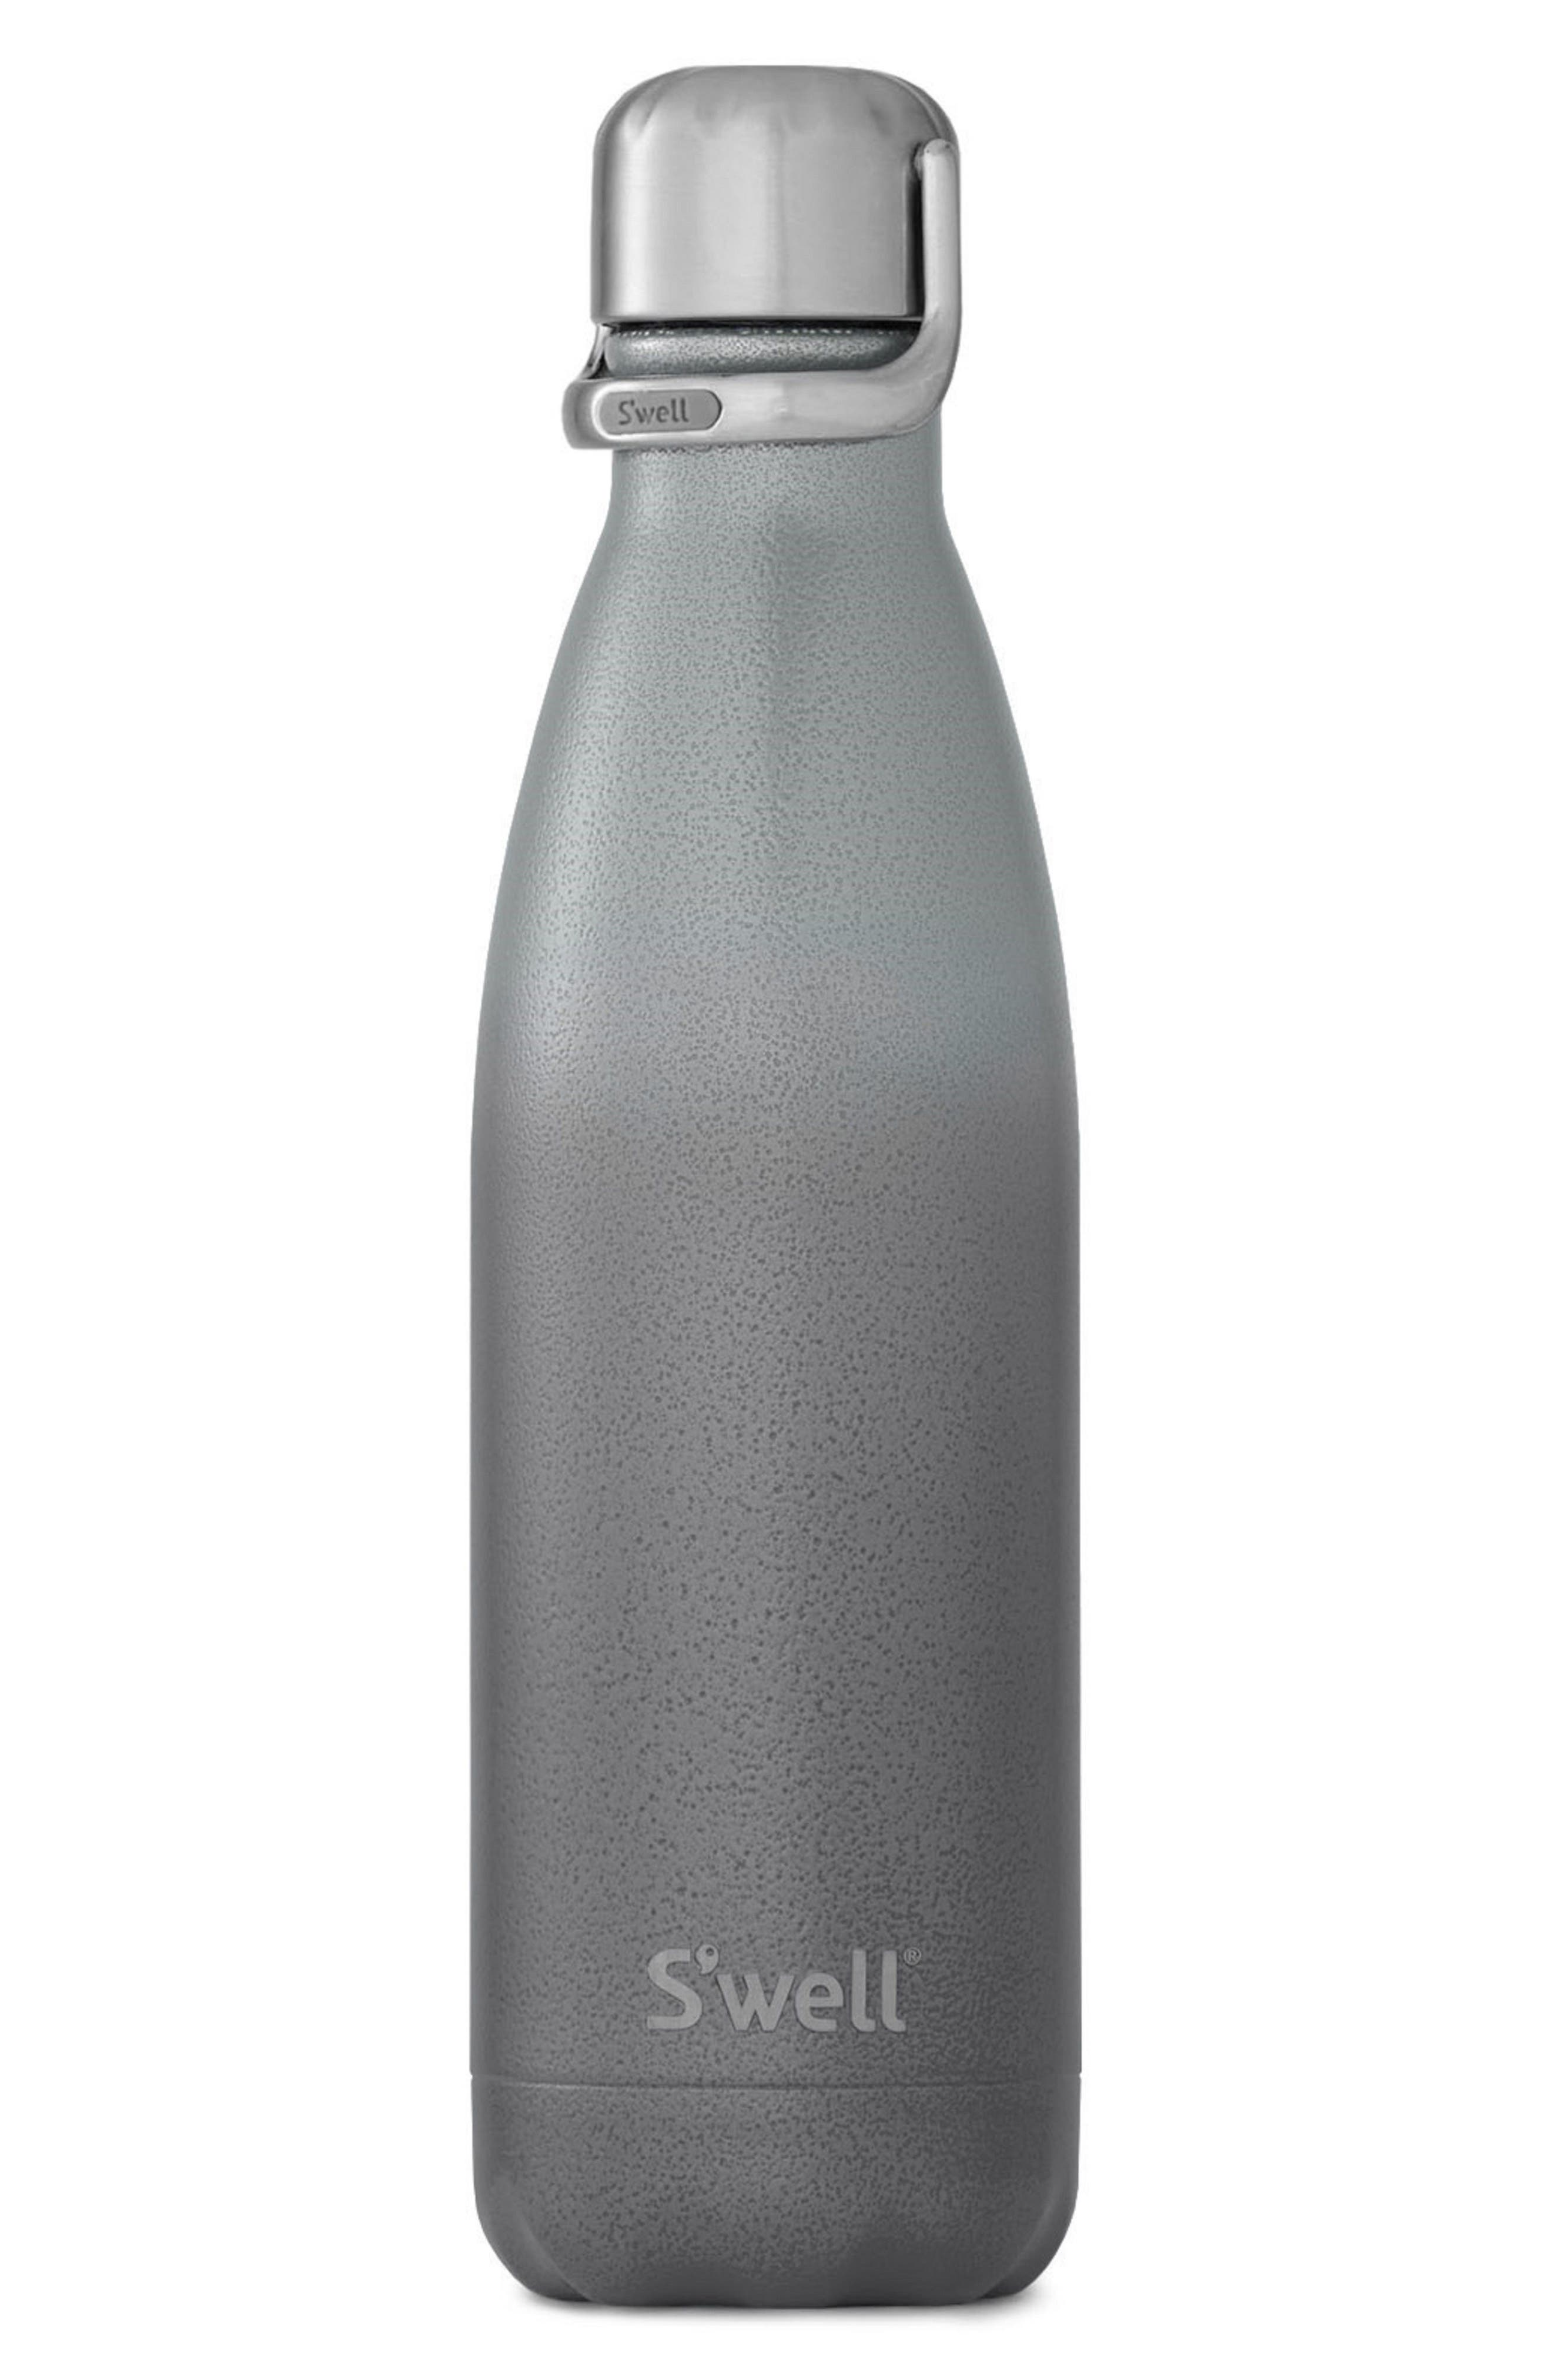 Main Image - S'well Zeus Stainless Steel Water Bottle with Sport Cap